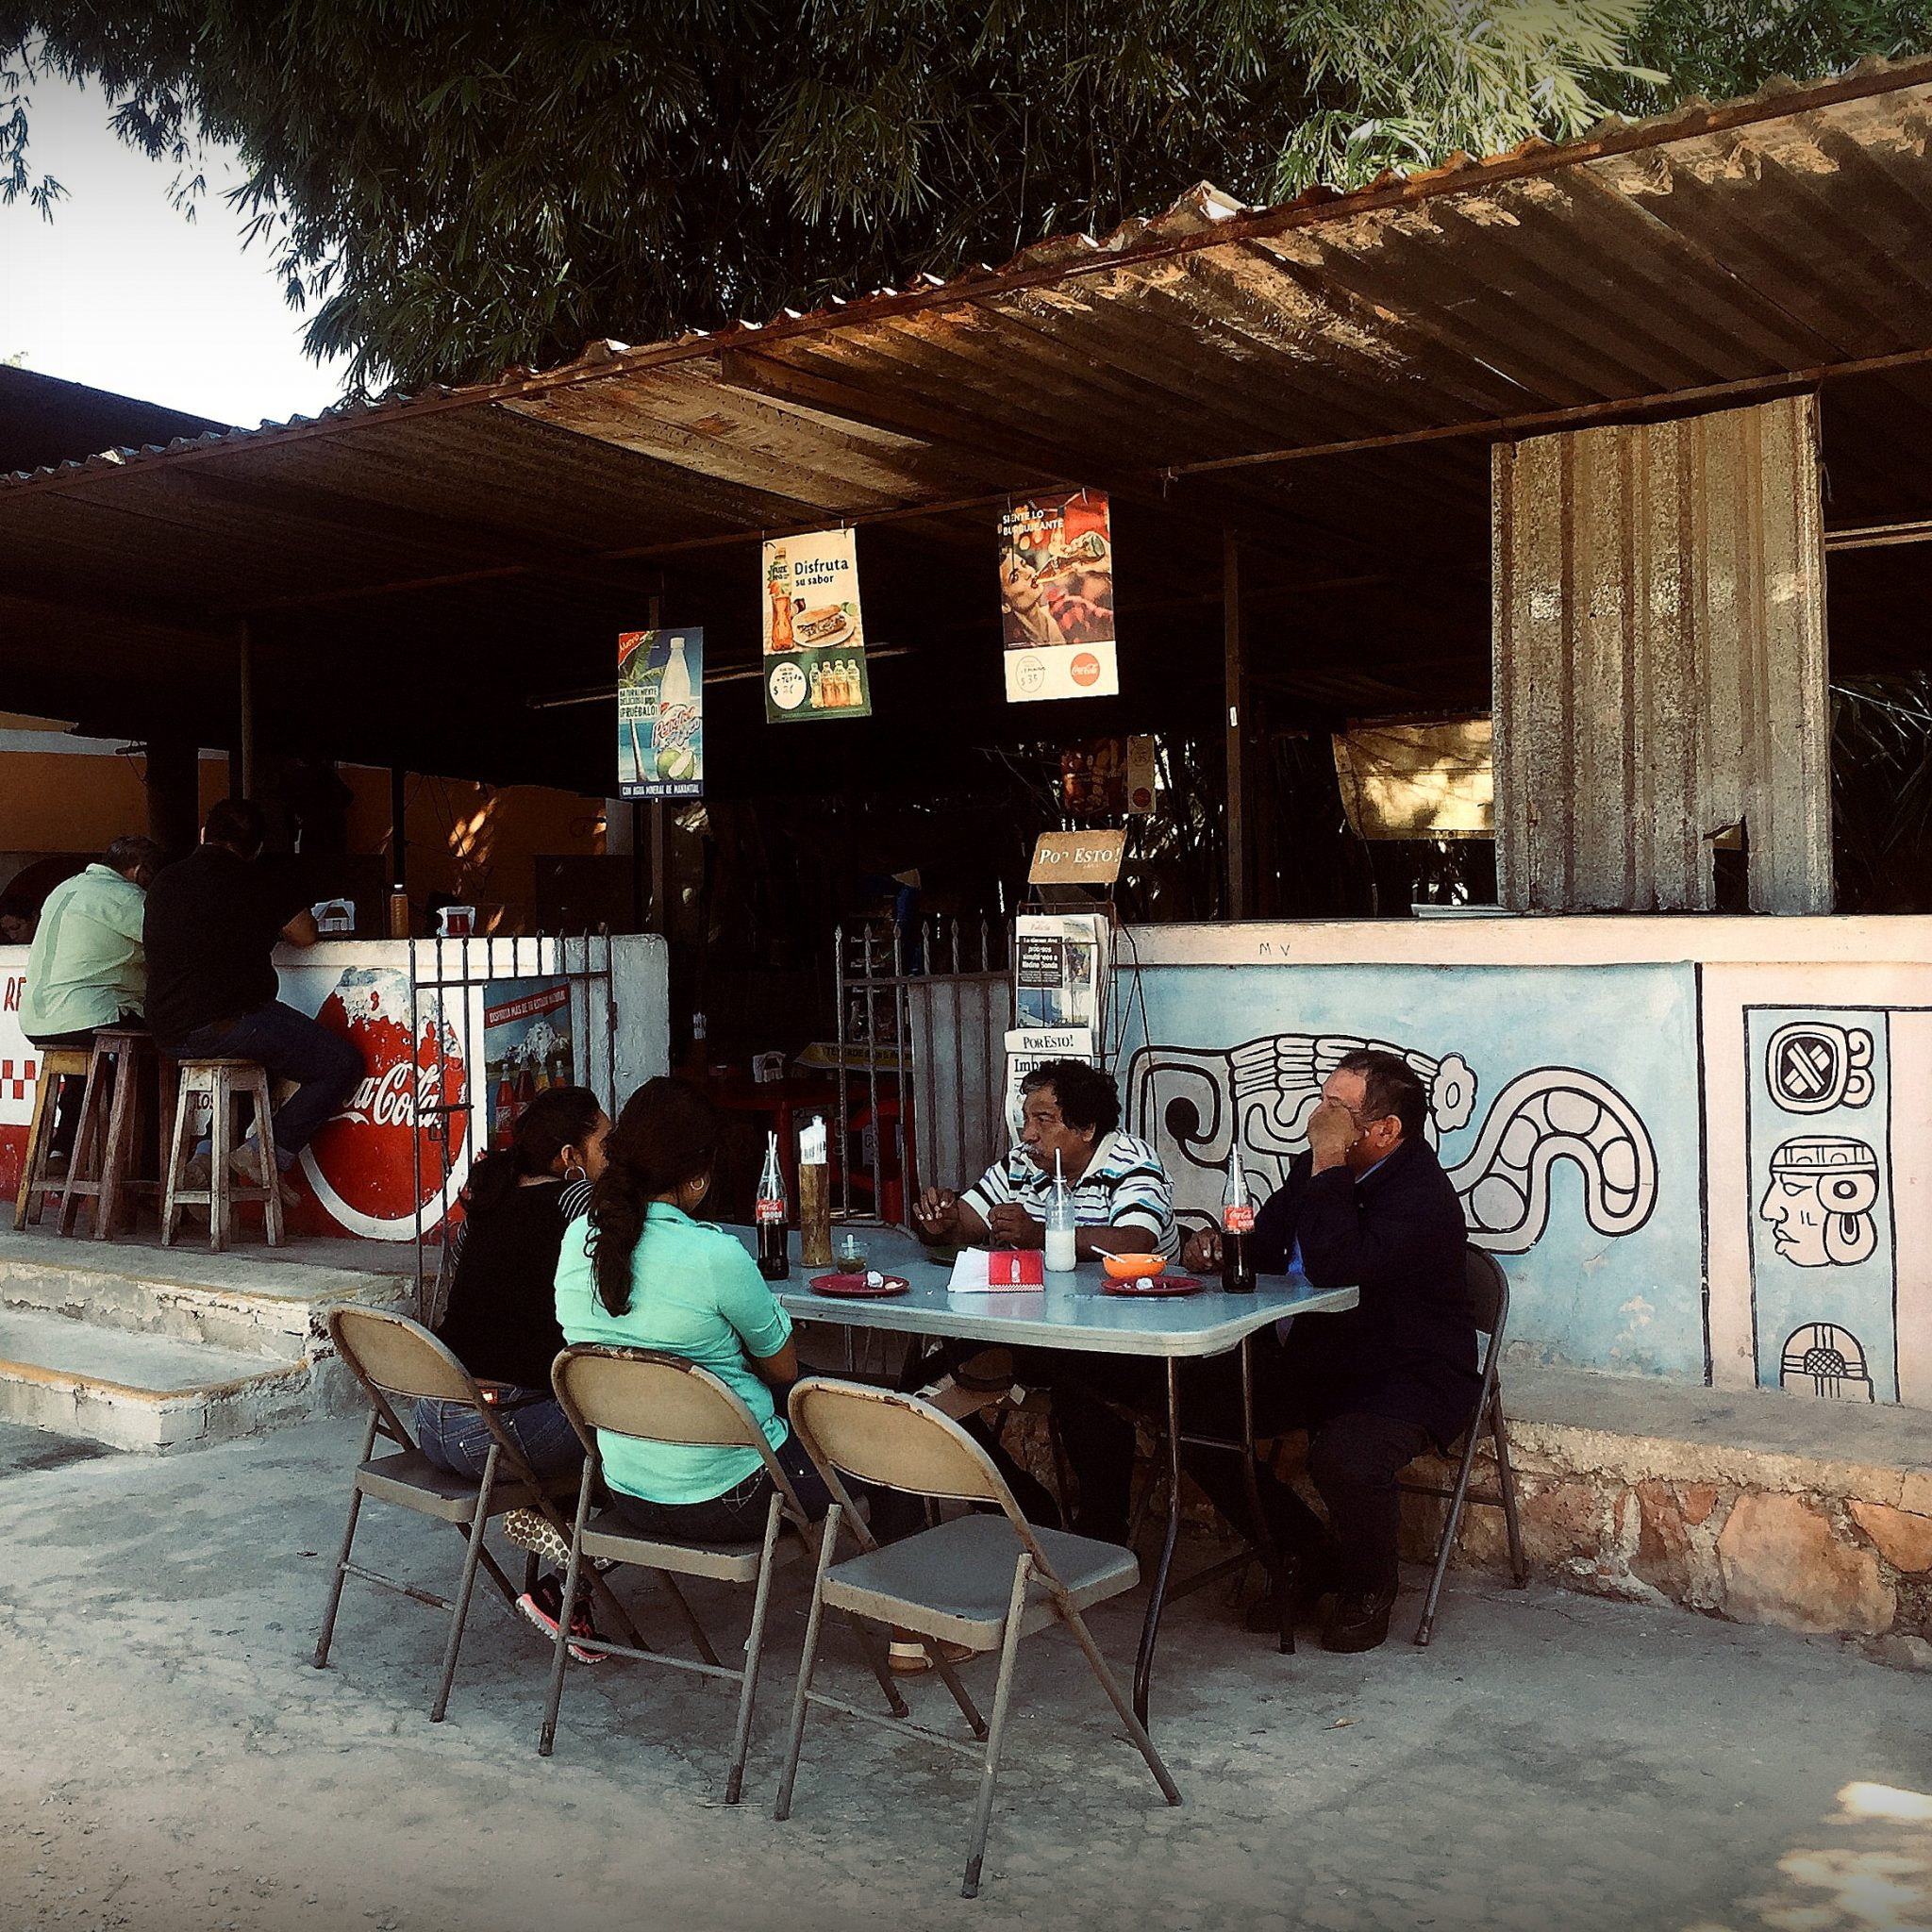 Road side restaurants offer the most authentic flavours and a chance to chat with friendly locals.